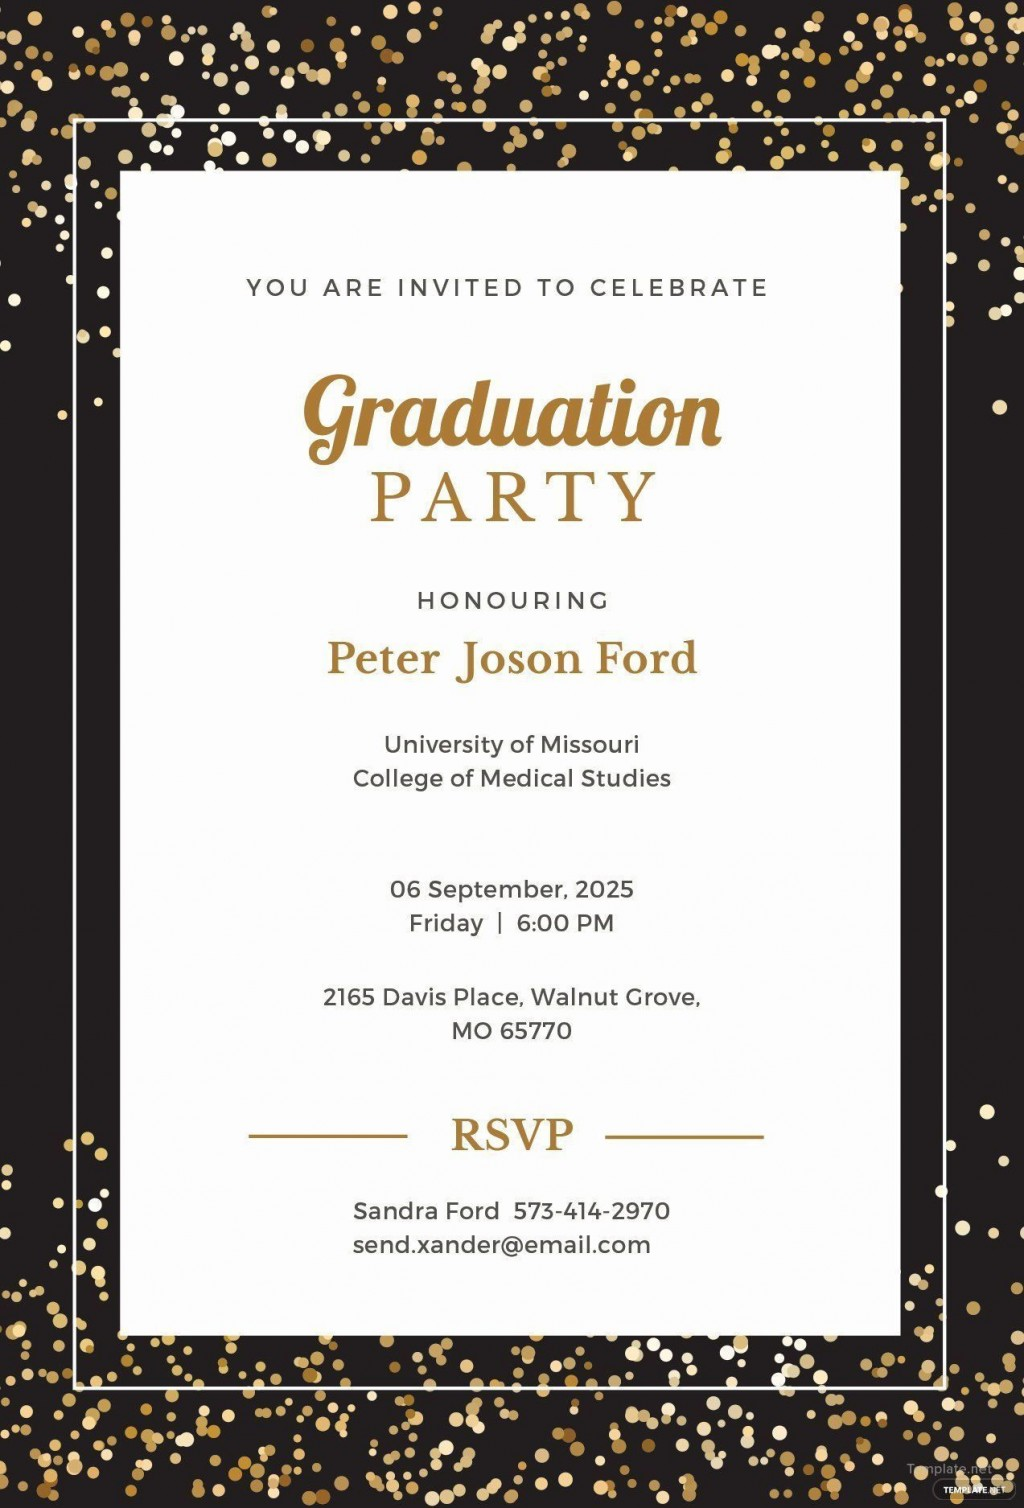 008 Dreaded Microsoft Word Graduation Party Invitation Template High Definition Large